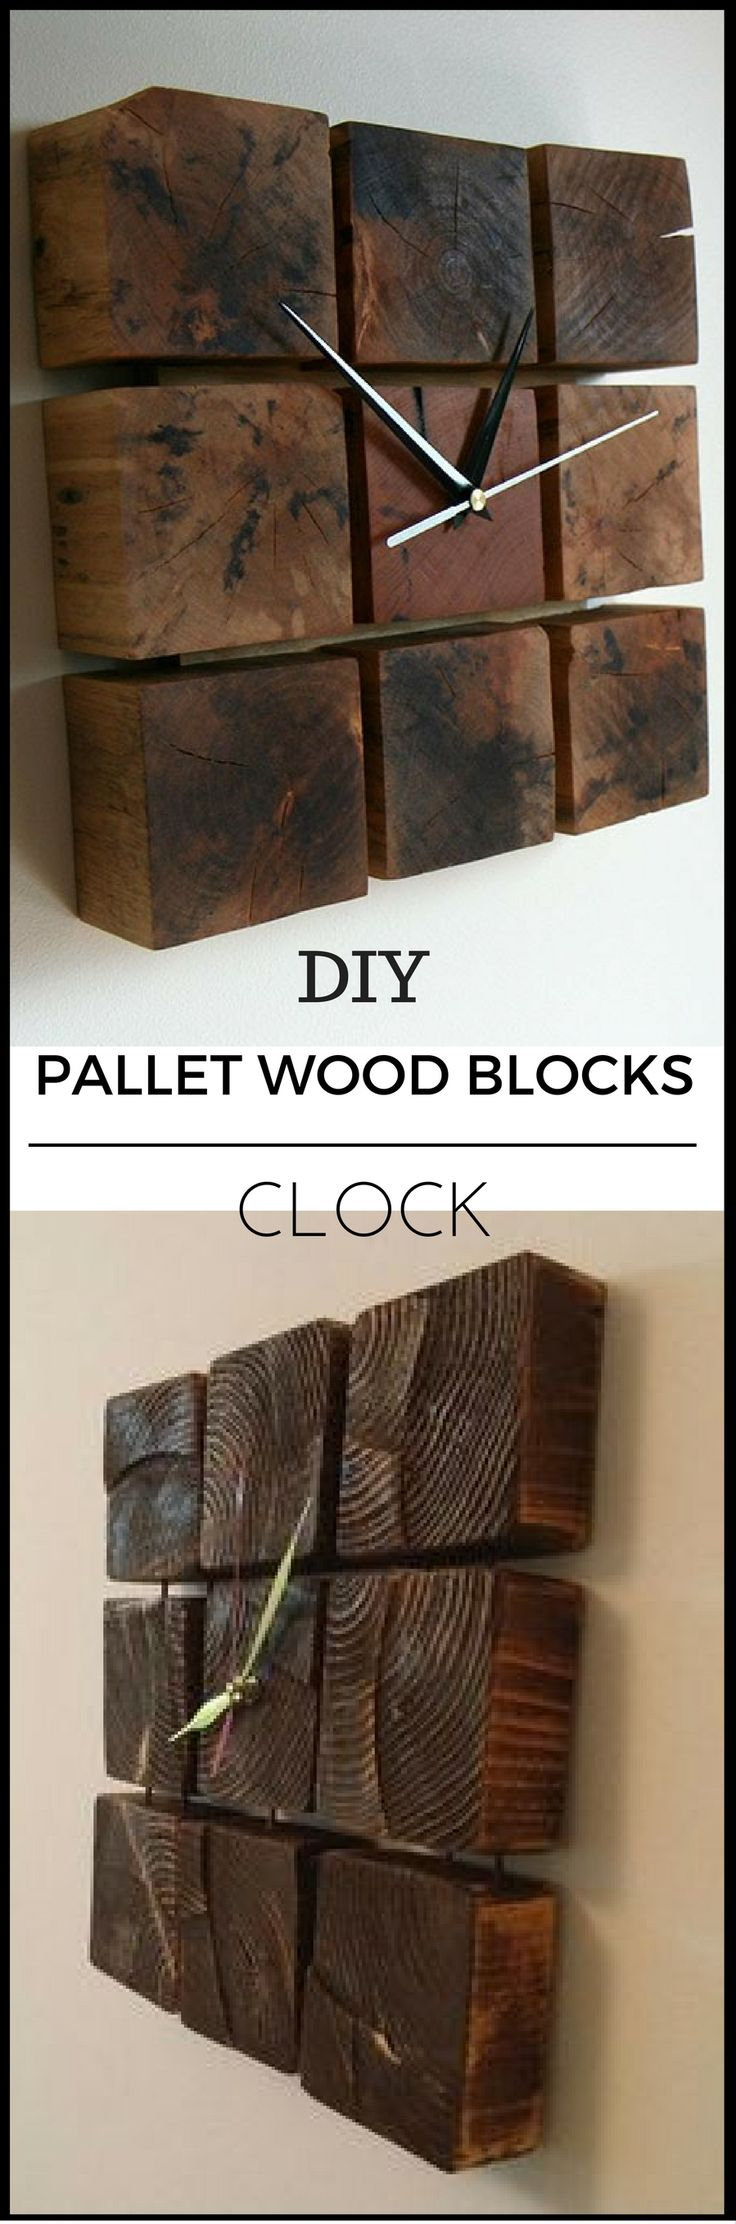 How To Make A Pallet Wood Blocks Clock http://vid.staged.com/95Zs More